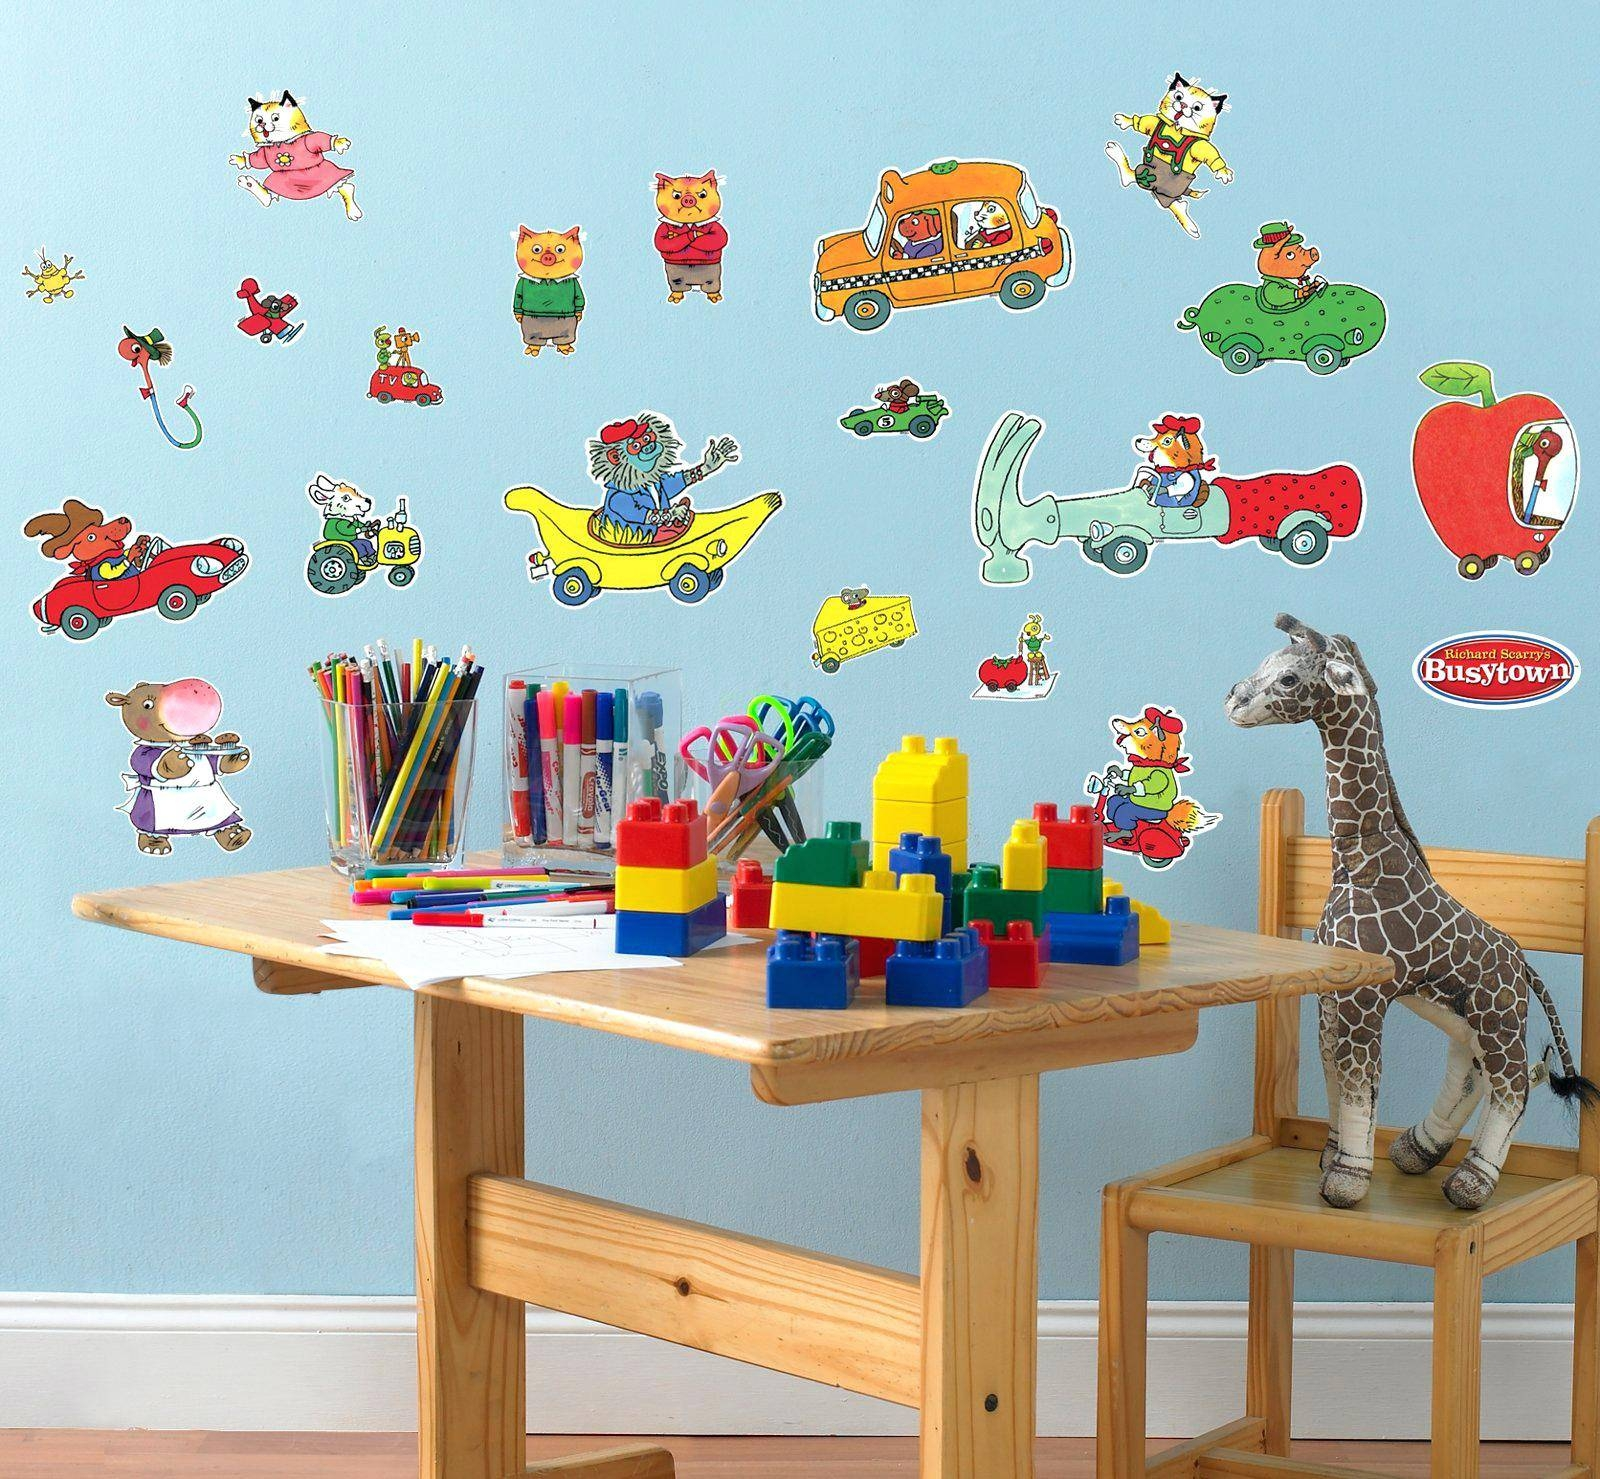 Hungry Caterpillar Wall Decals Classic The Pooh Wall Decals Home In Recent The Very Hungry Caterpillar Wall Art (View 9 of 25)